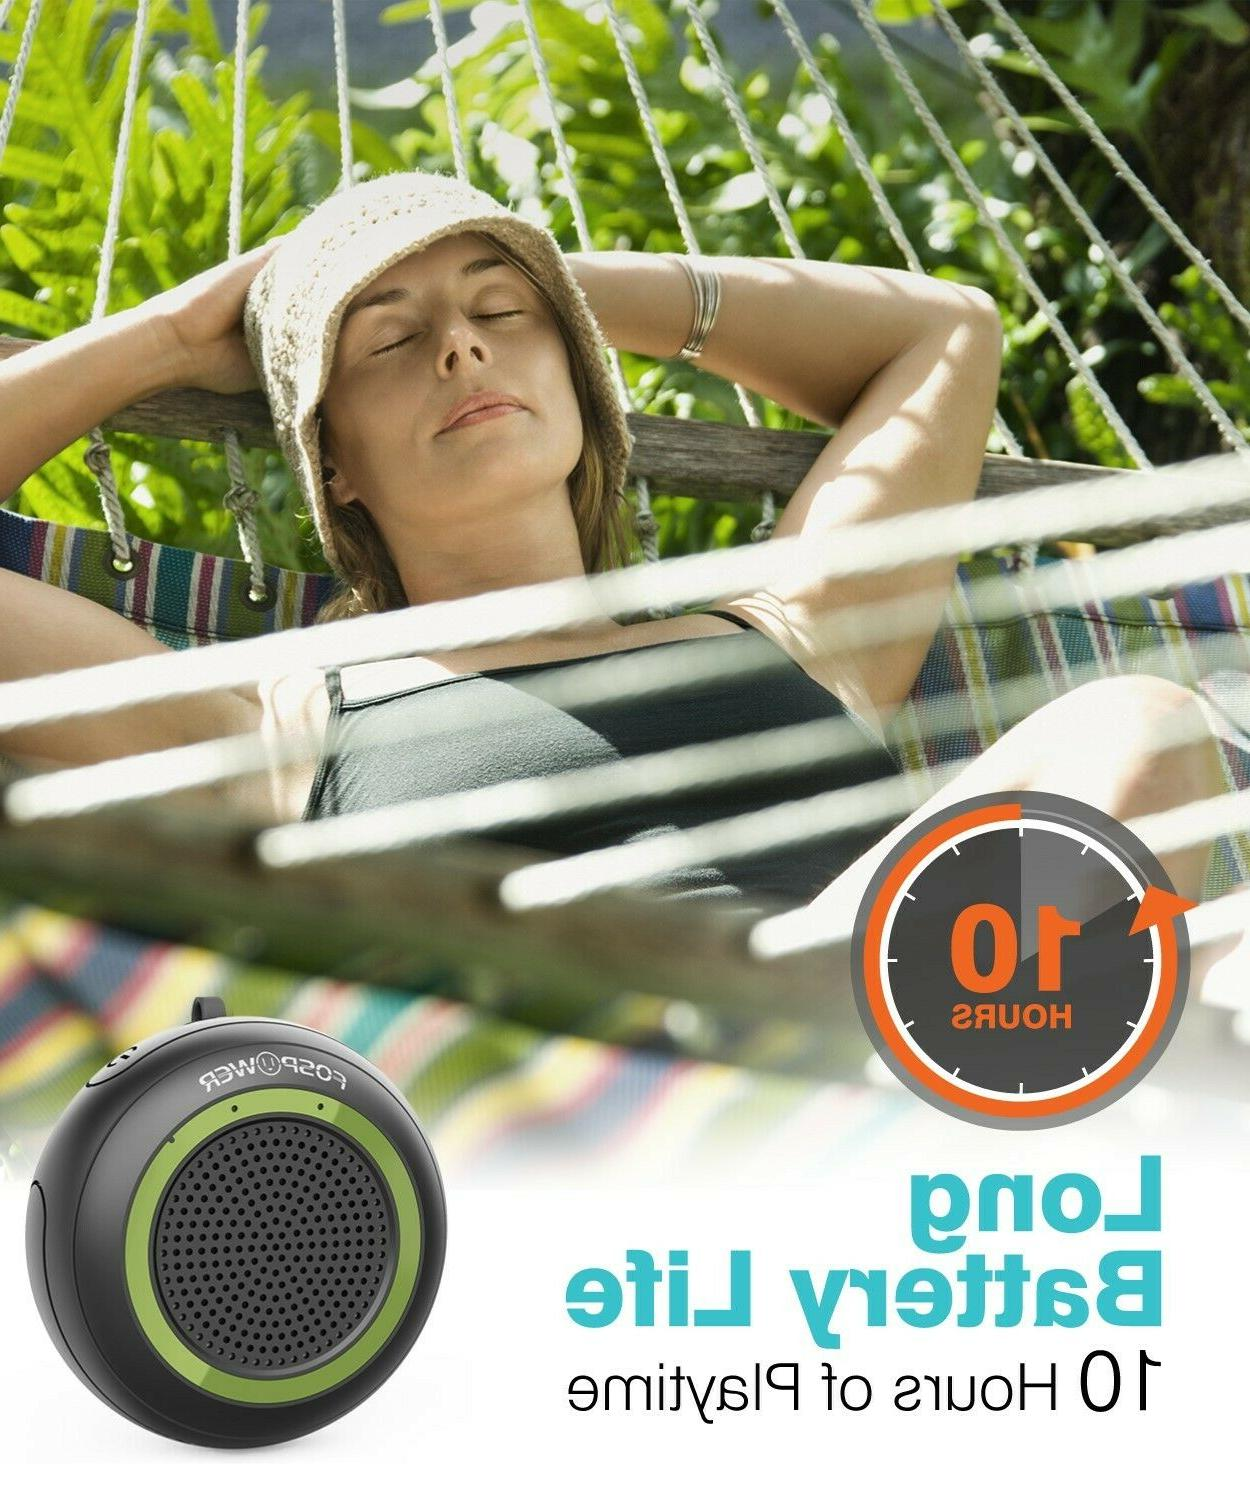 TWS Waterproof Stereo Speaker Outdoor Shower